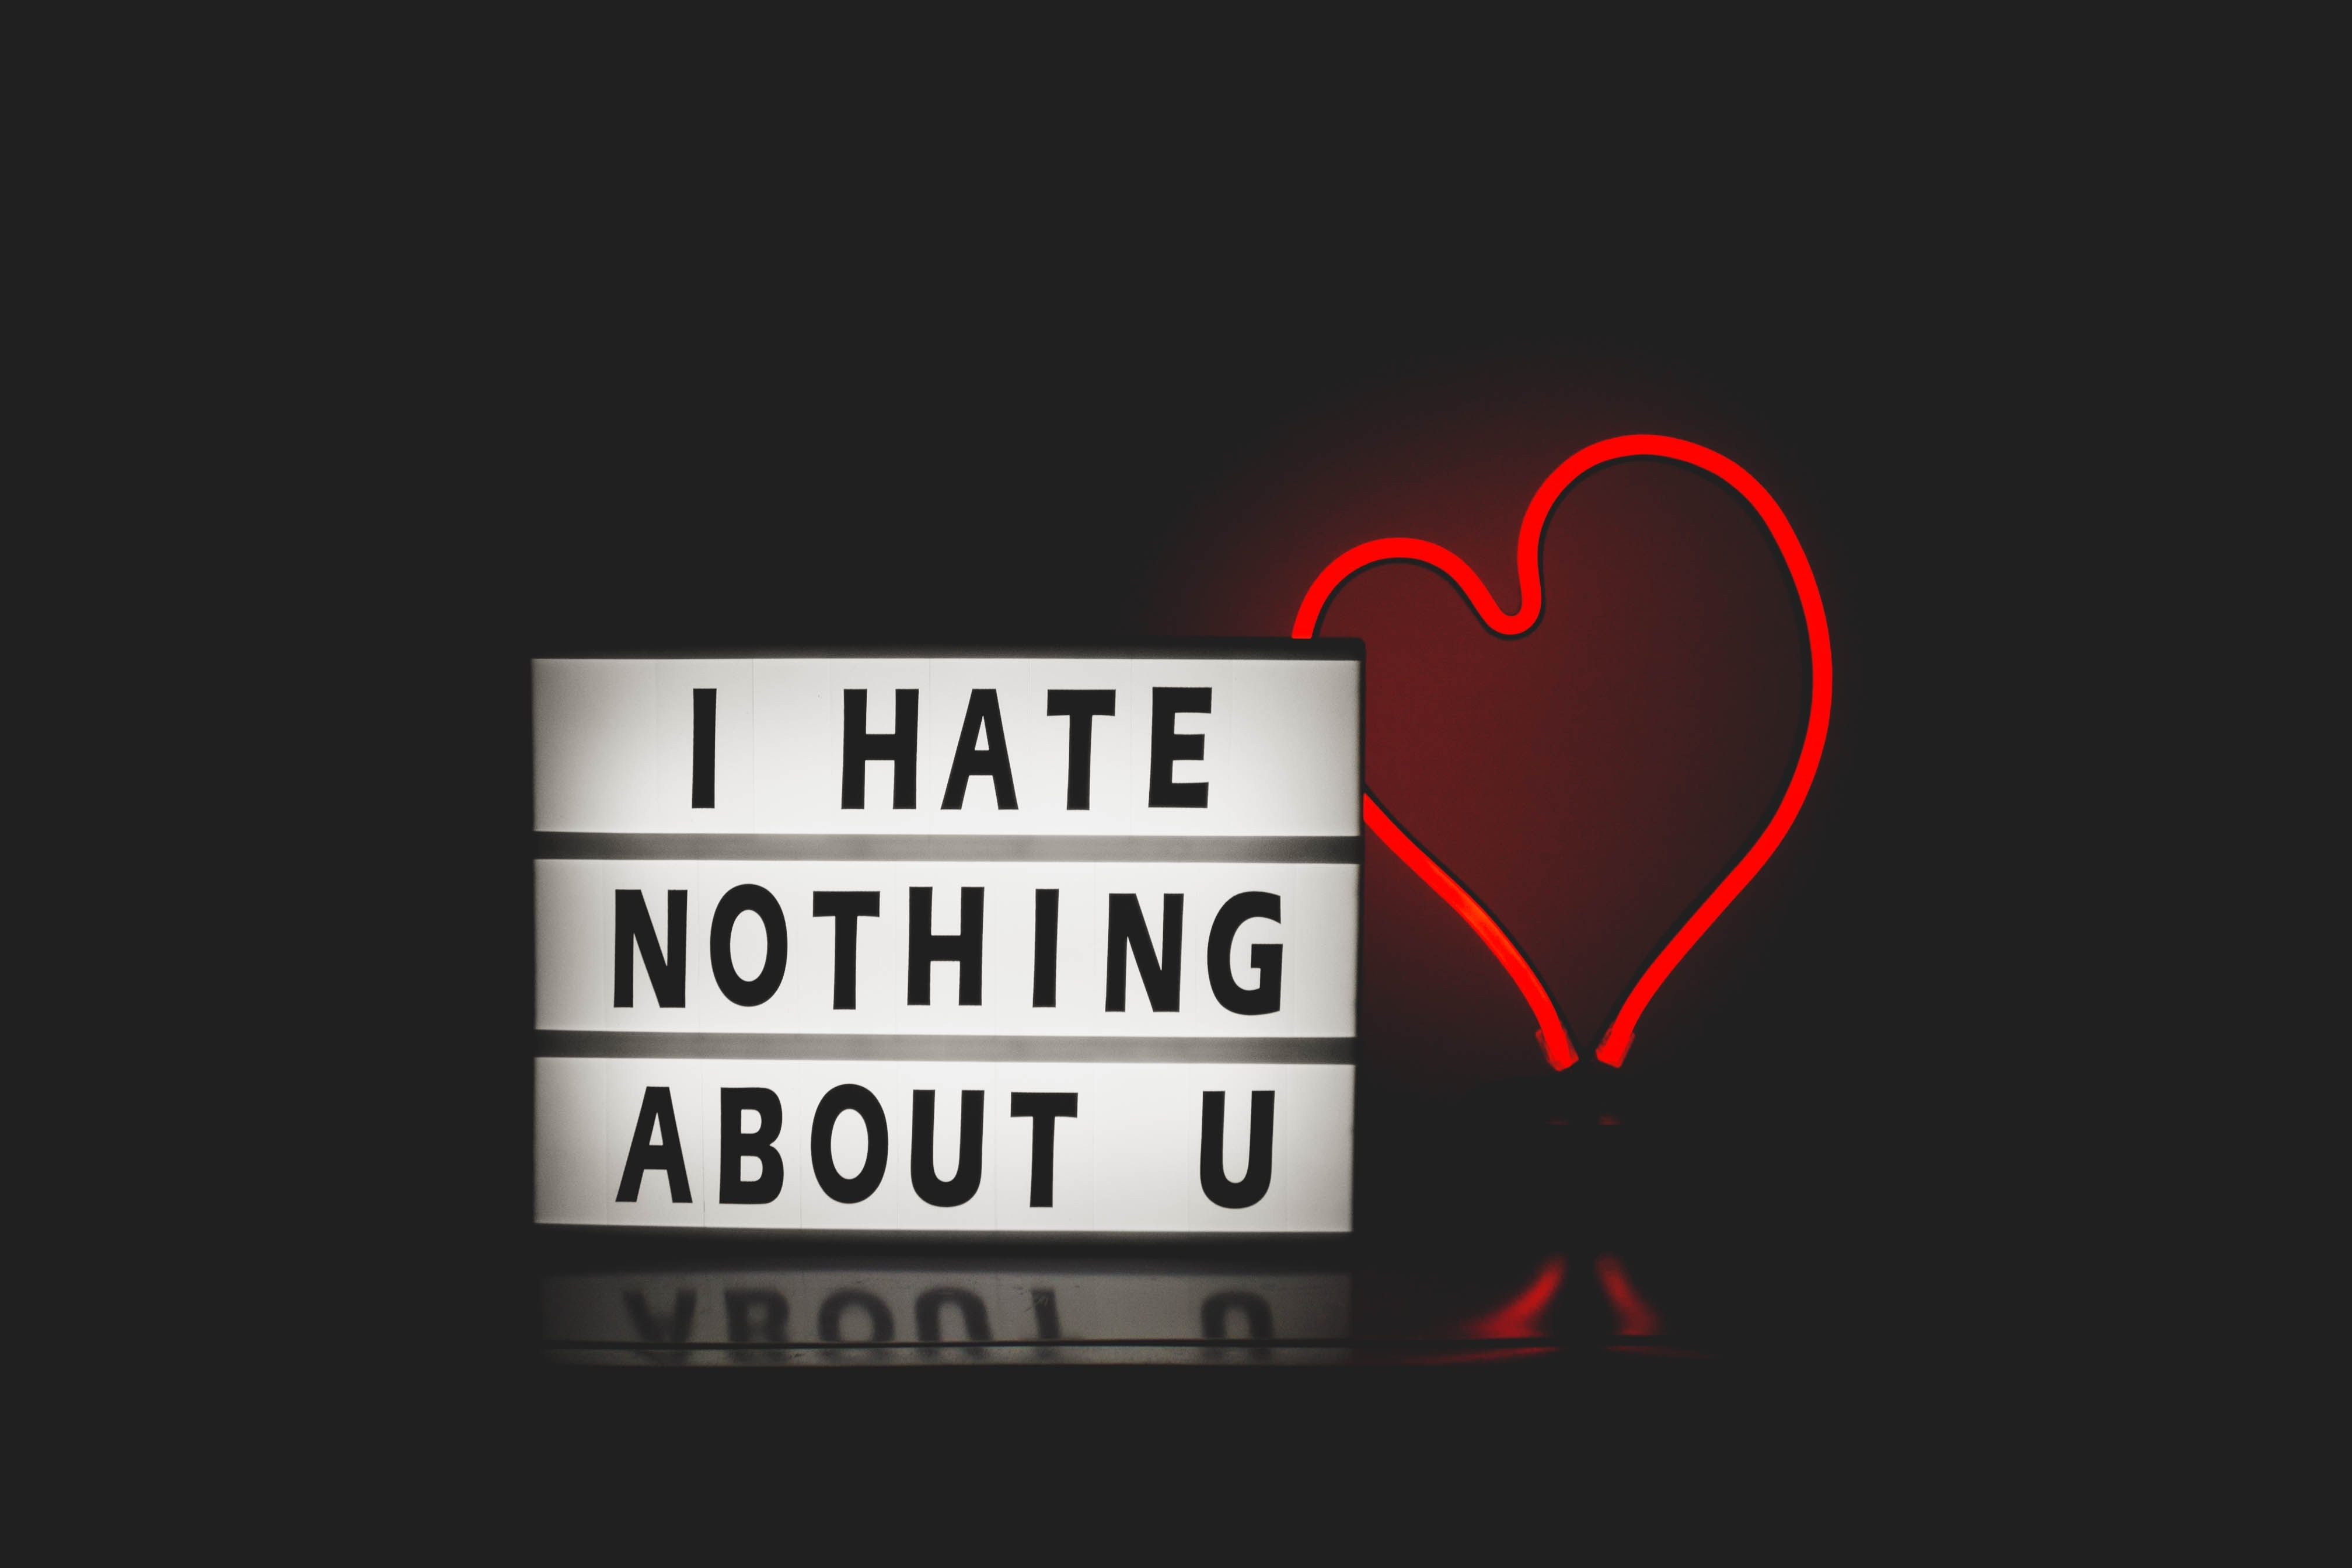 I hate you love pic download